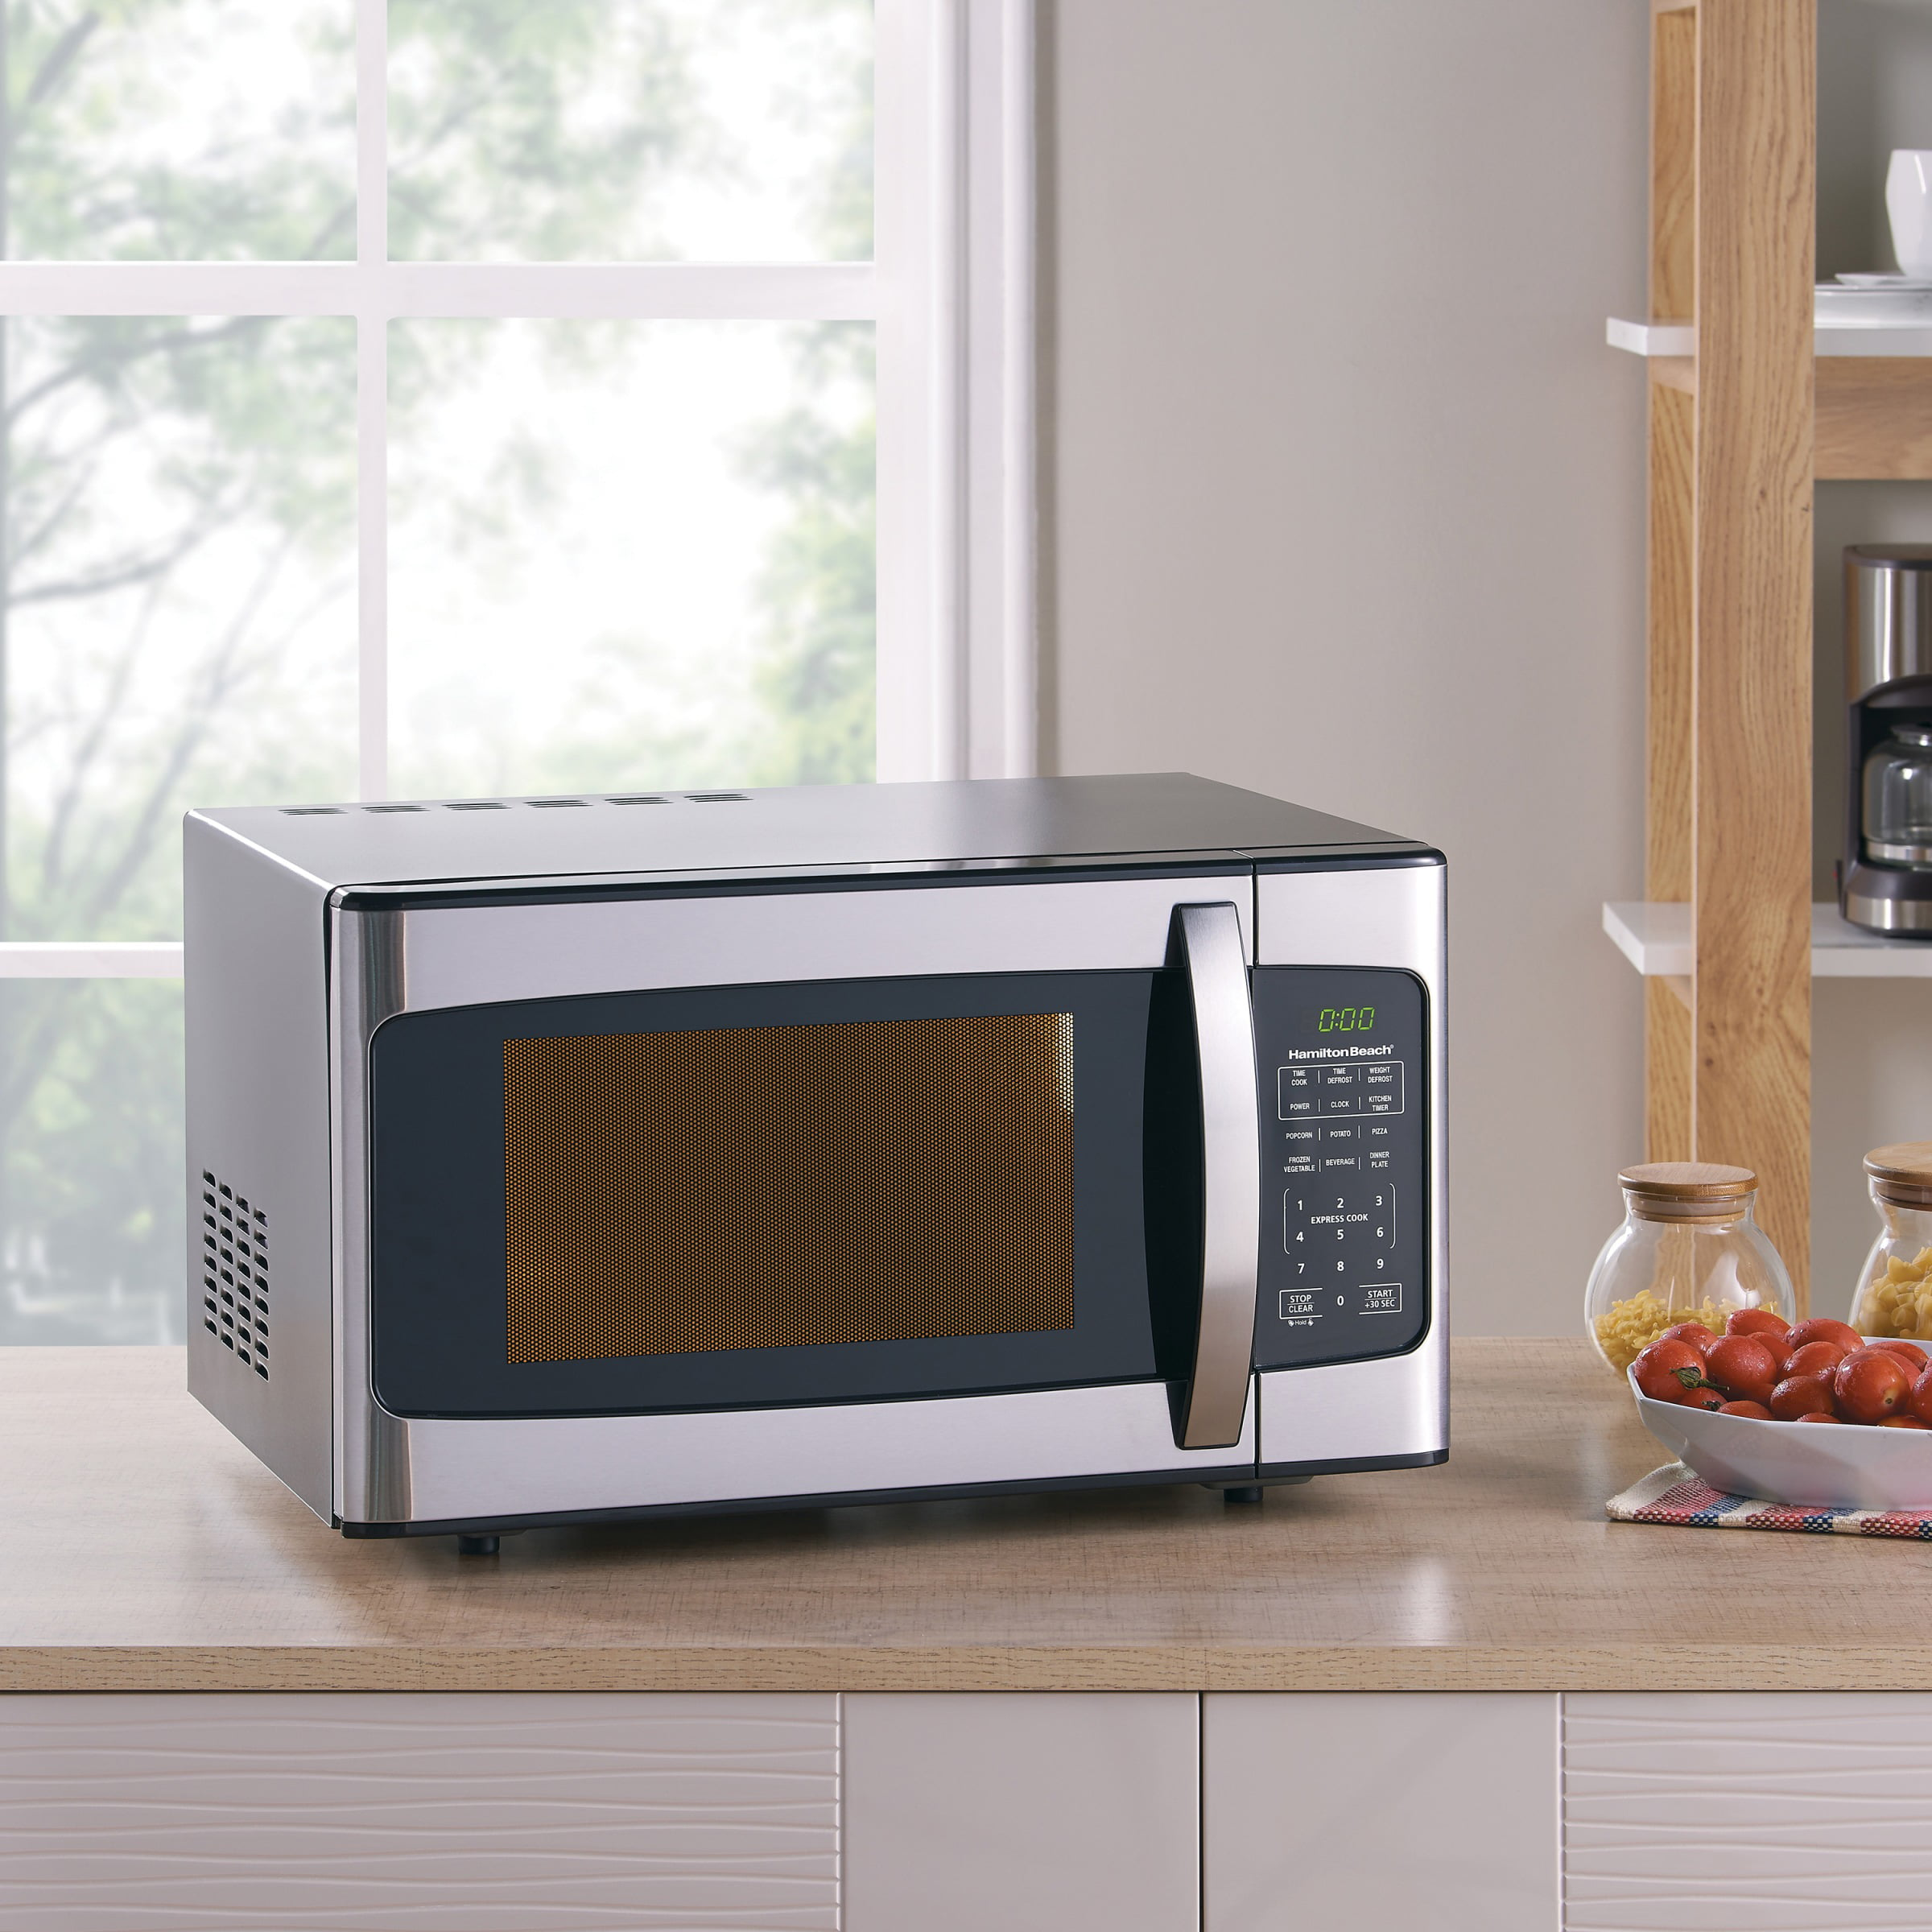 Kitchen Microwave: 1.1 Cu Ft Microwave Oven Countertop Kitchen Counter Led